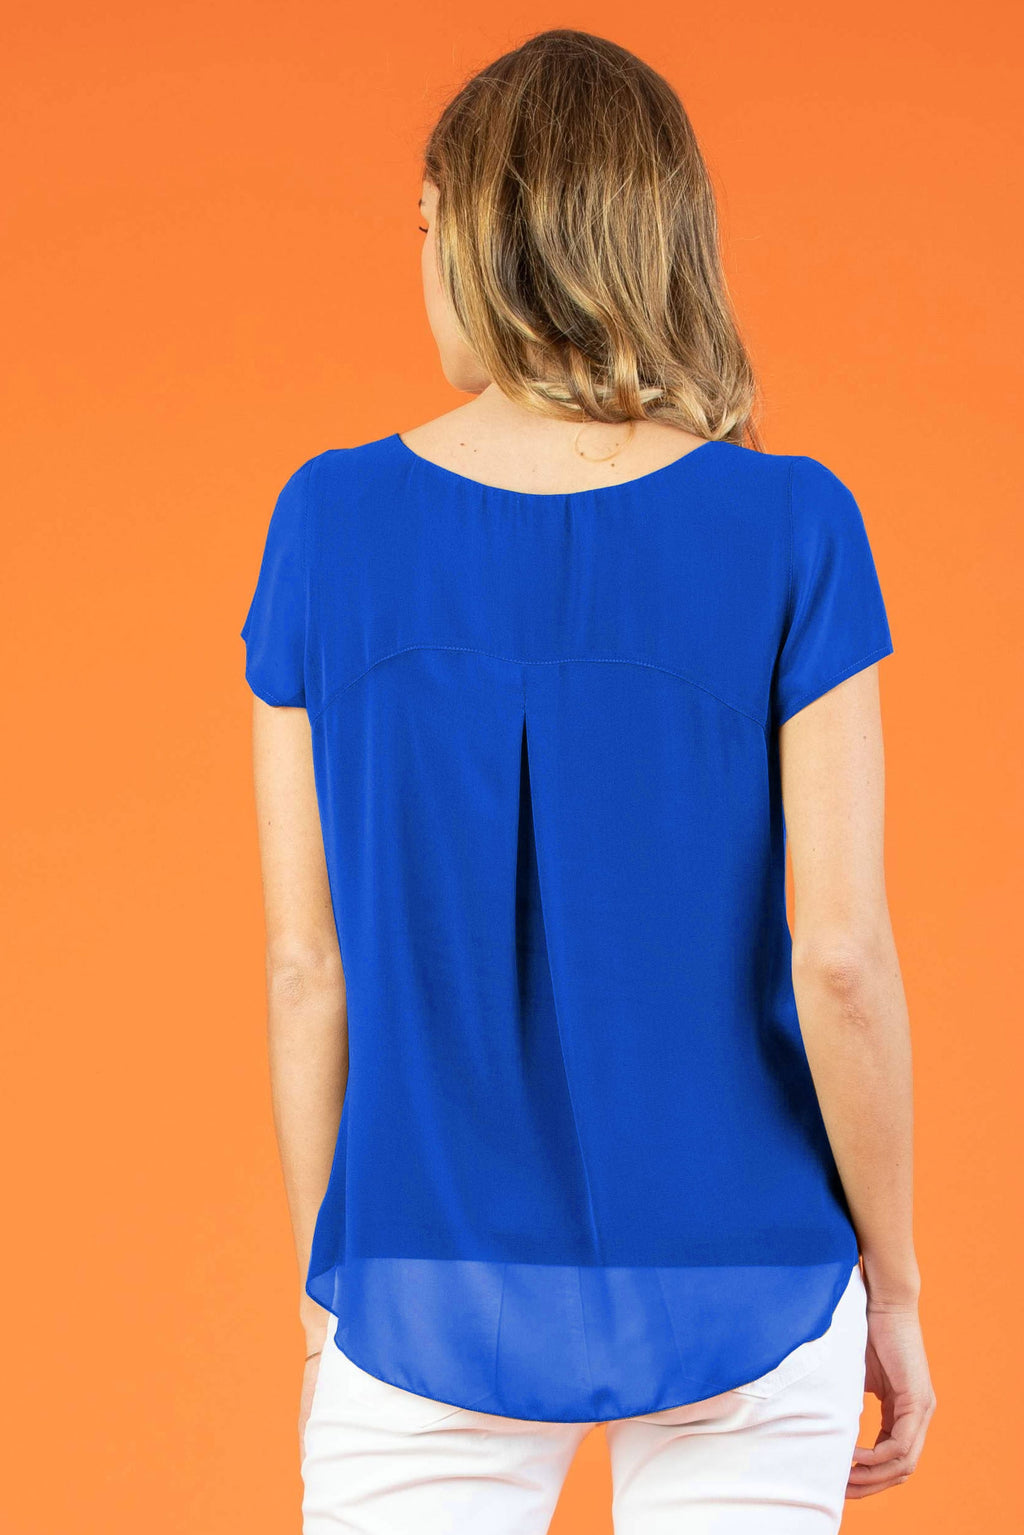 The Georgie Chiffon Maternity Blouse in Royal Blue